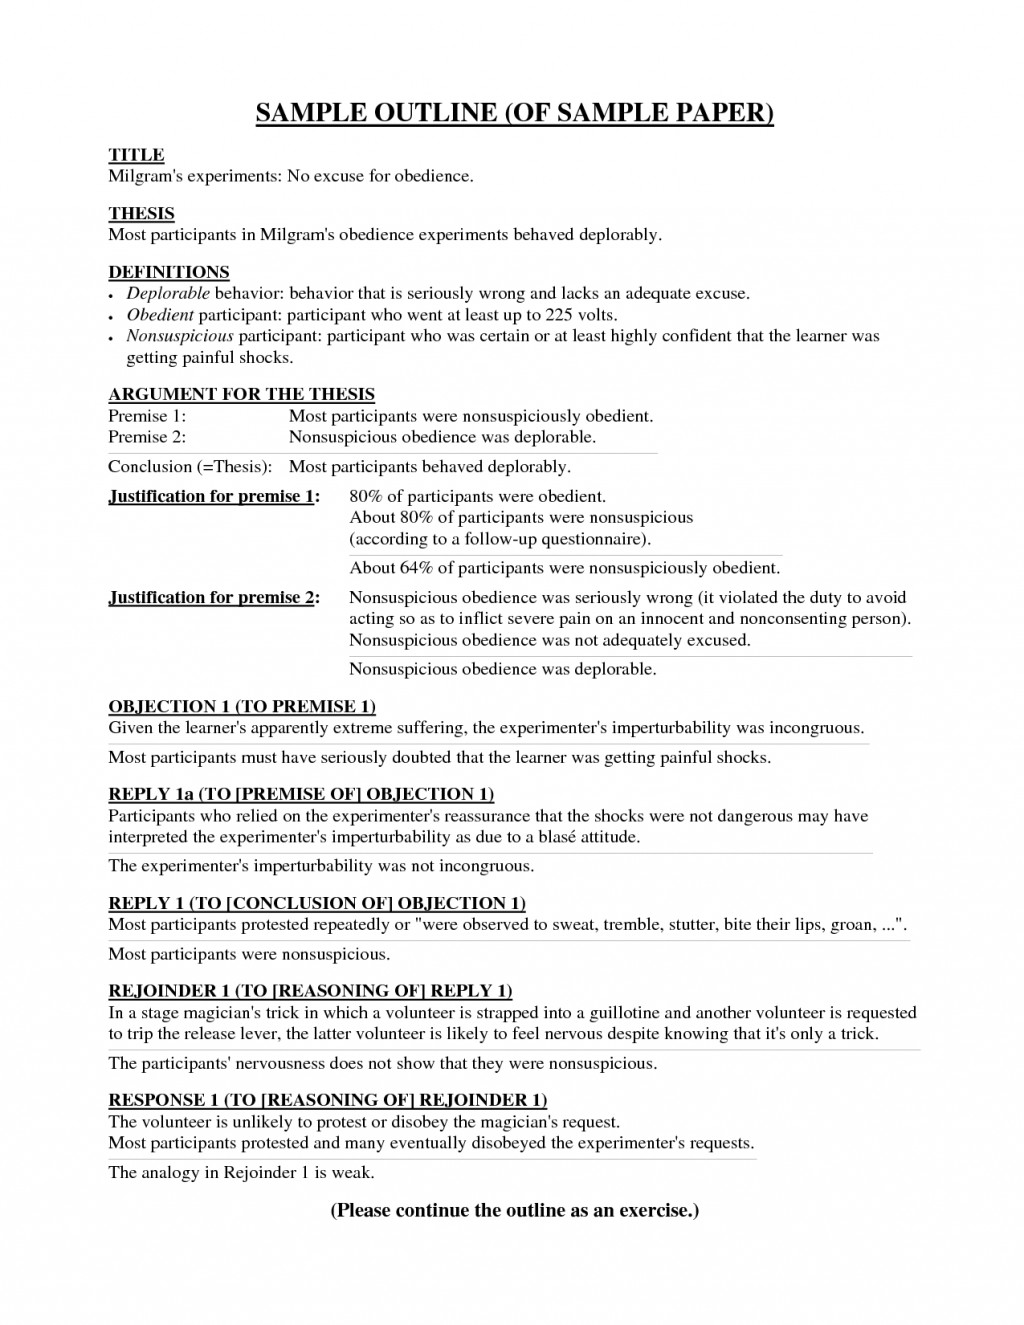 023 20example Essay Layout Thesis Paper Outline Picture Resume Examples Of Outlines For Research Papers Inpa Format20 1024x1325 How To Write Wonderful A Apa Style Large